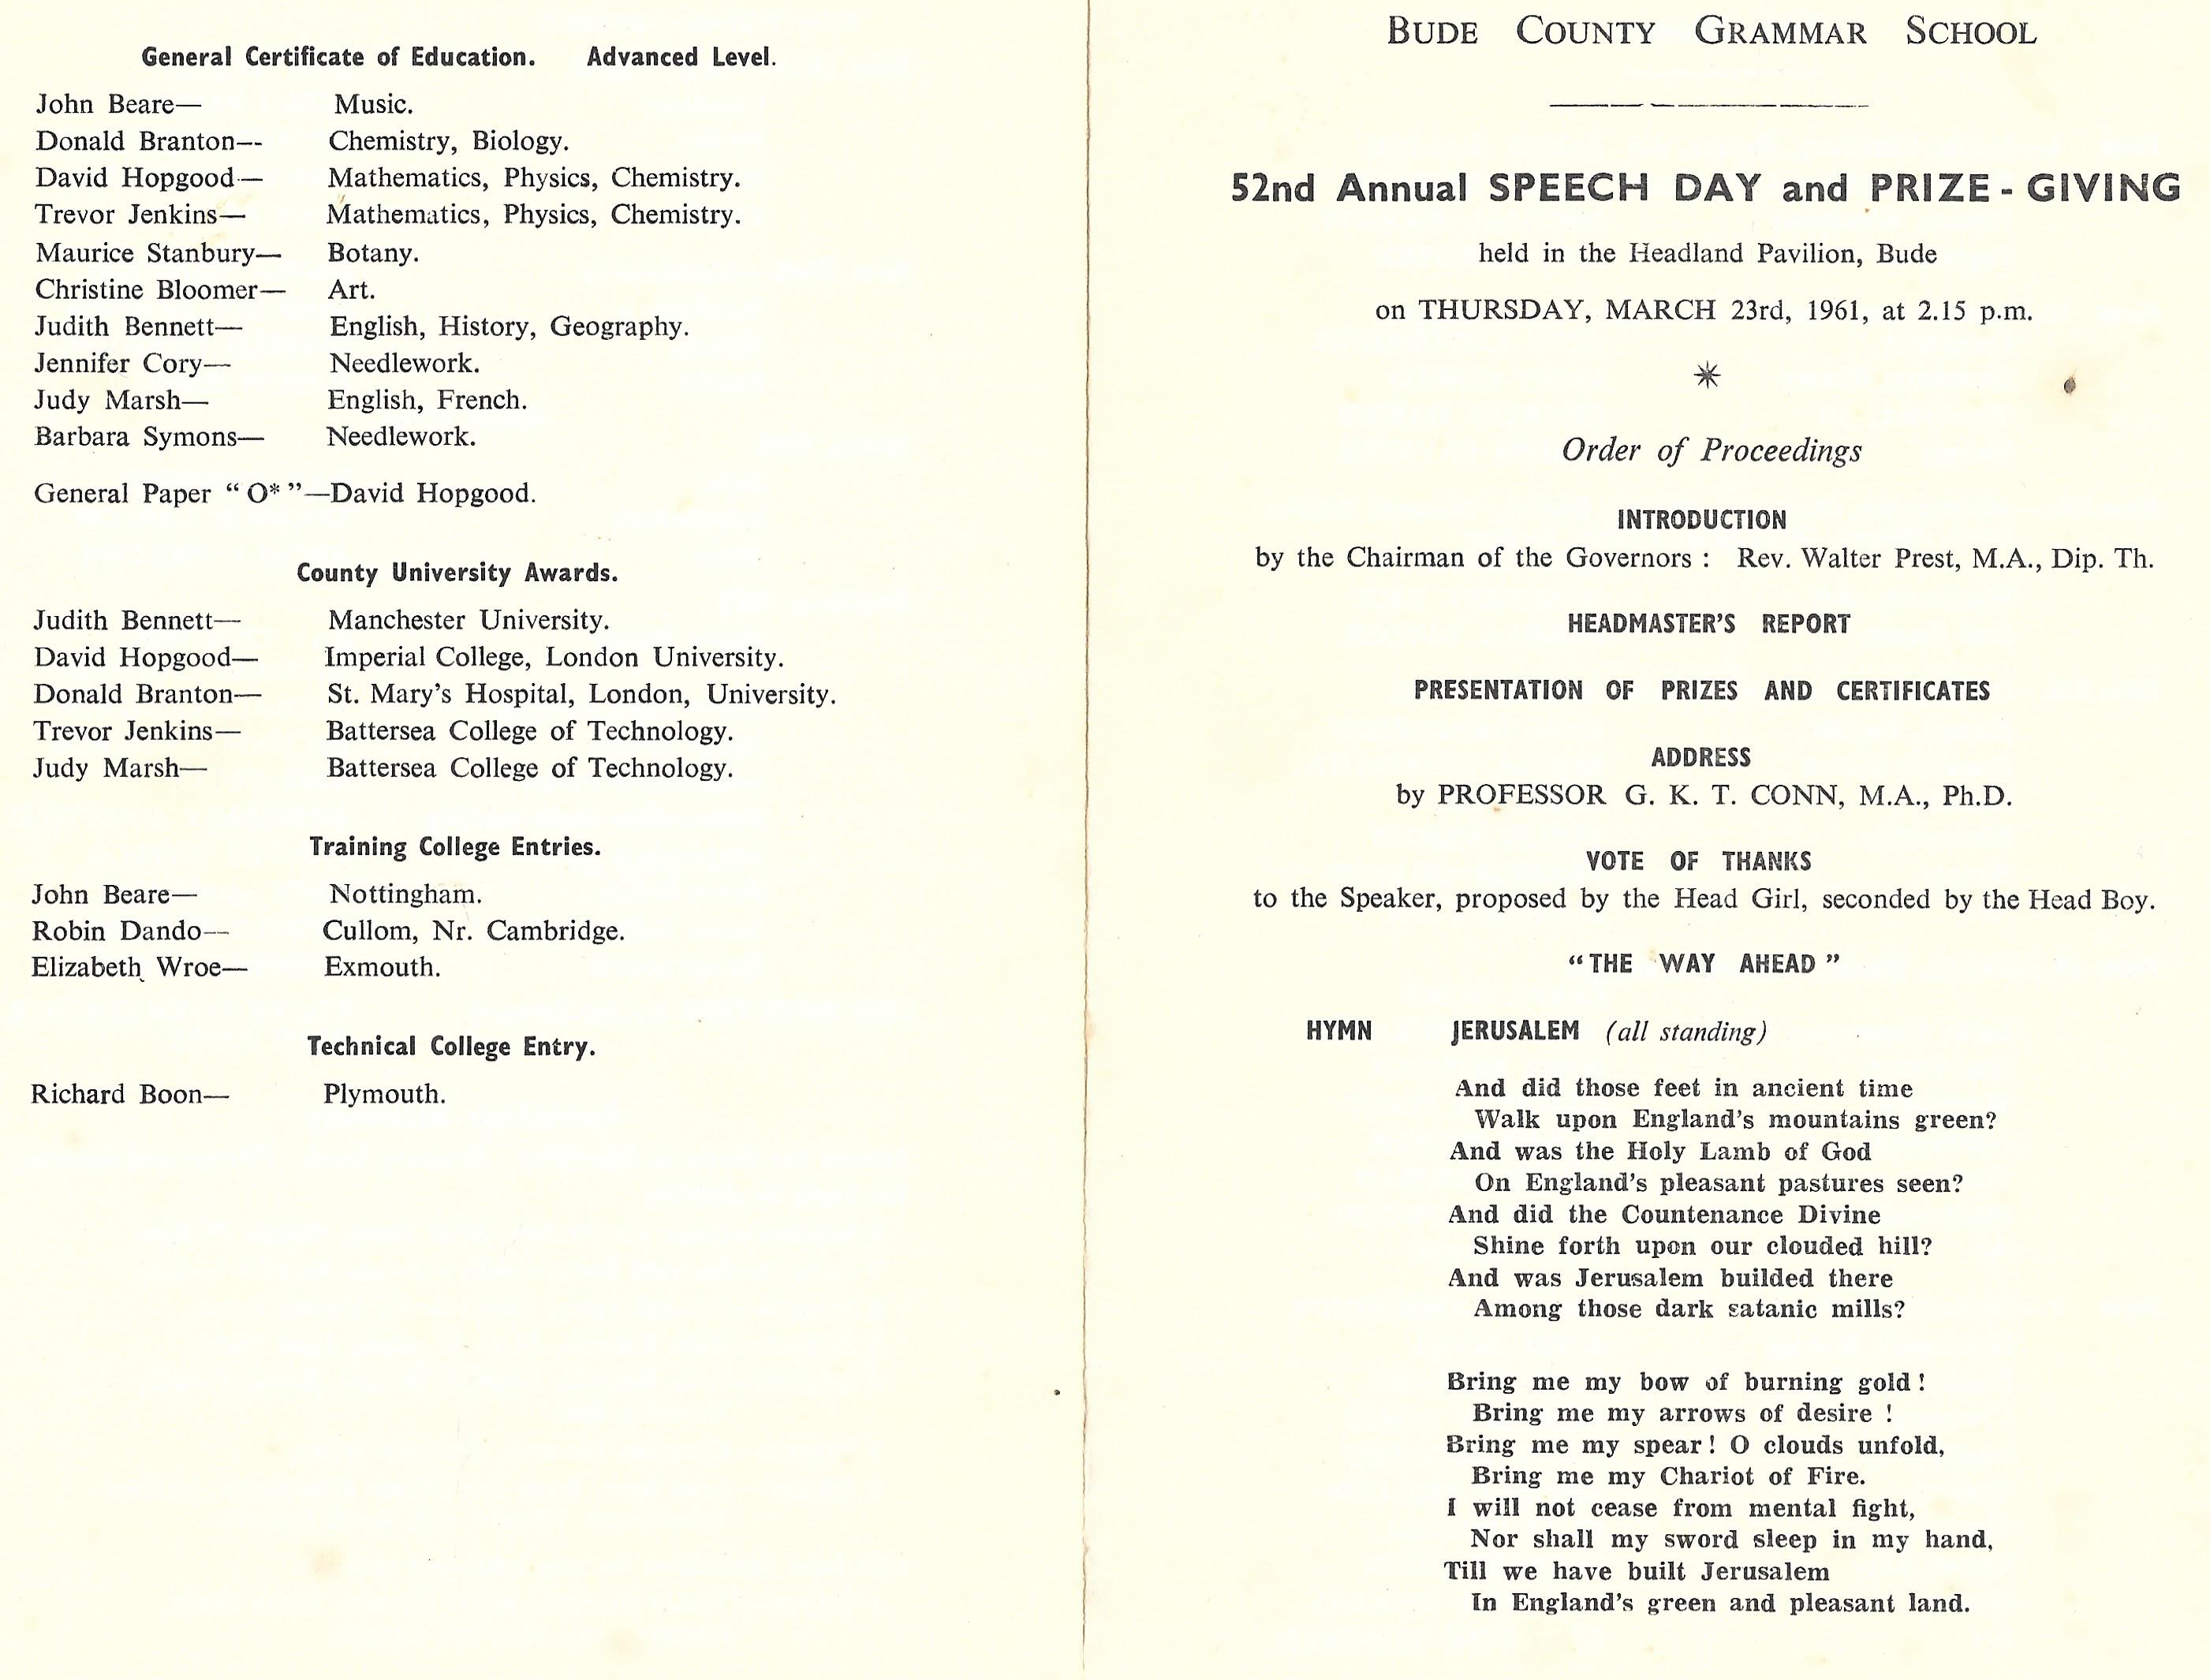 1961 School Speech Day Programme Cover